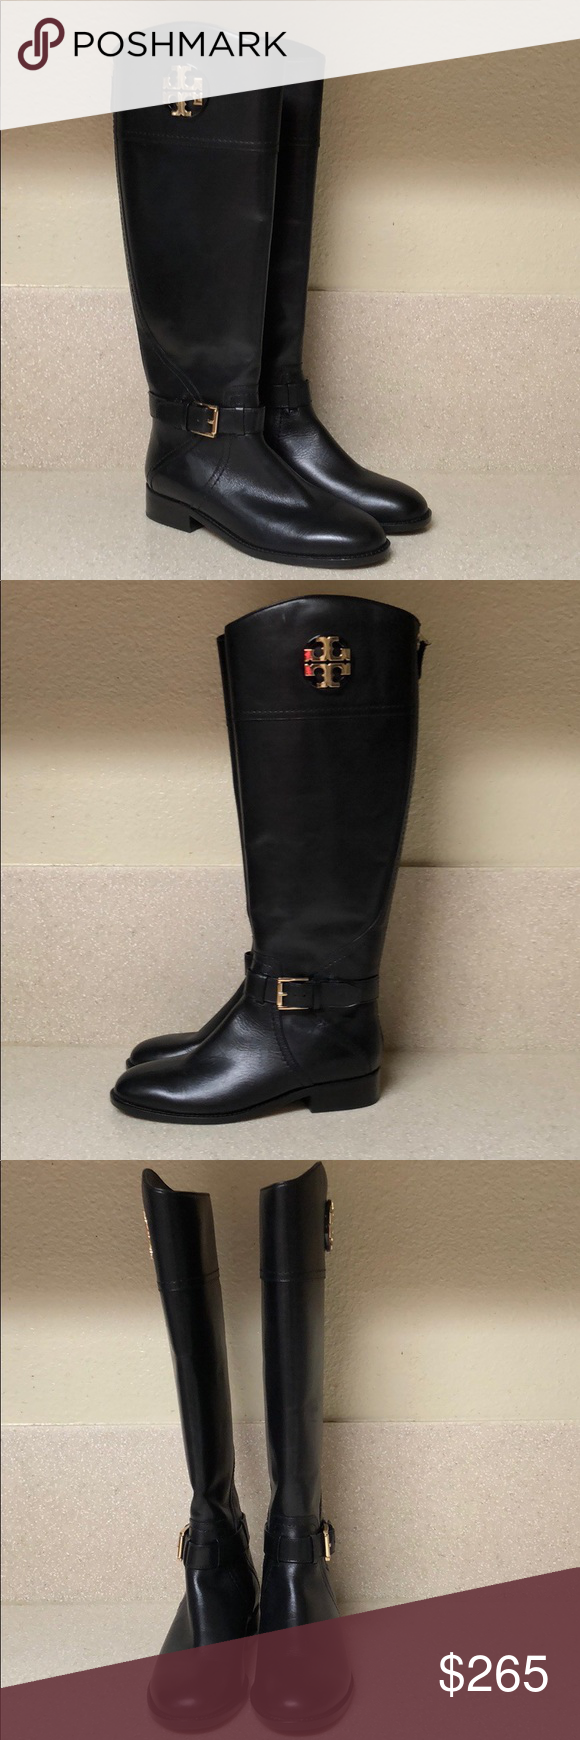 cb7aff28c43 Tory Burch Adeline Tall Riding Boot Black Sz 5.5 Tory Burch Adeline Riding  Boot Black.